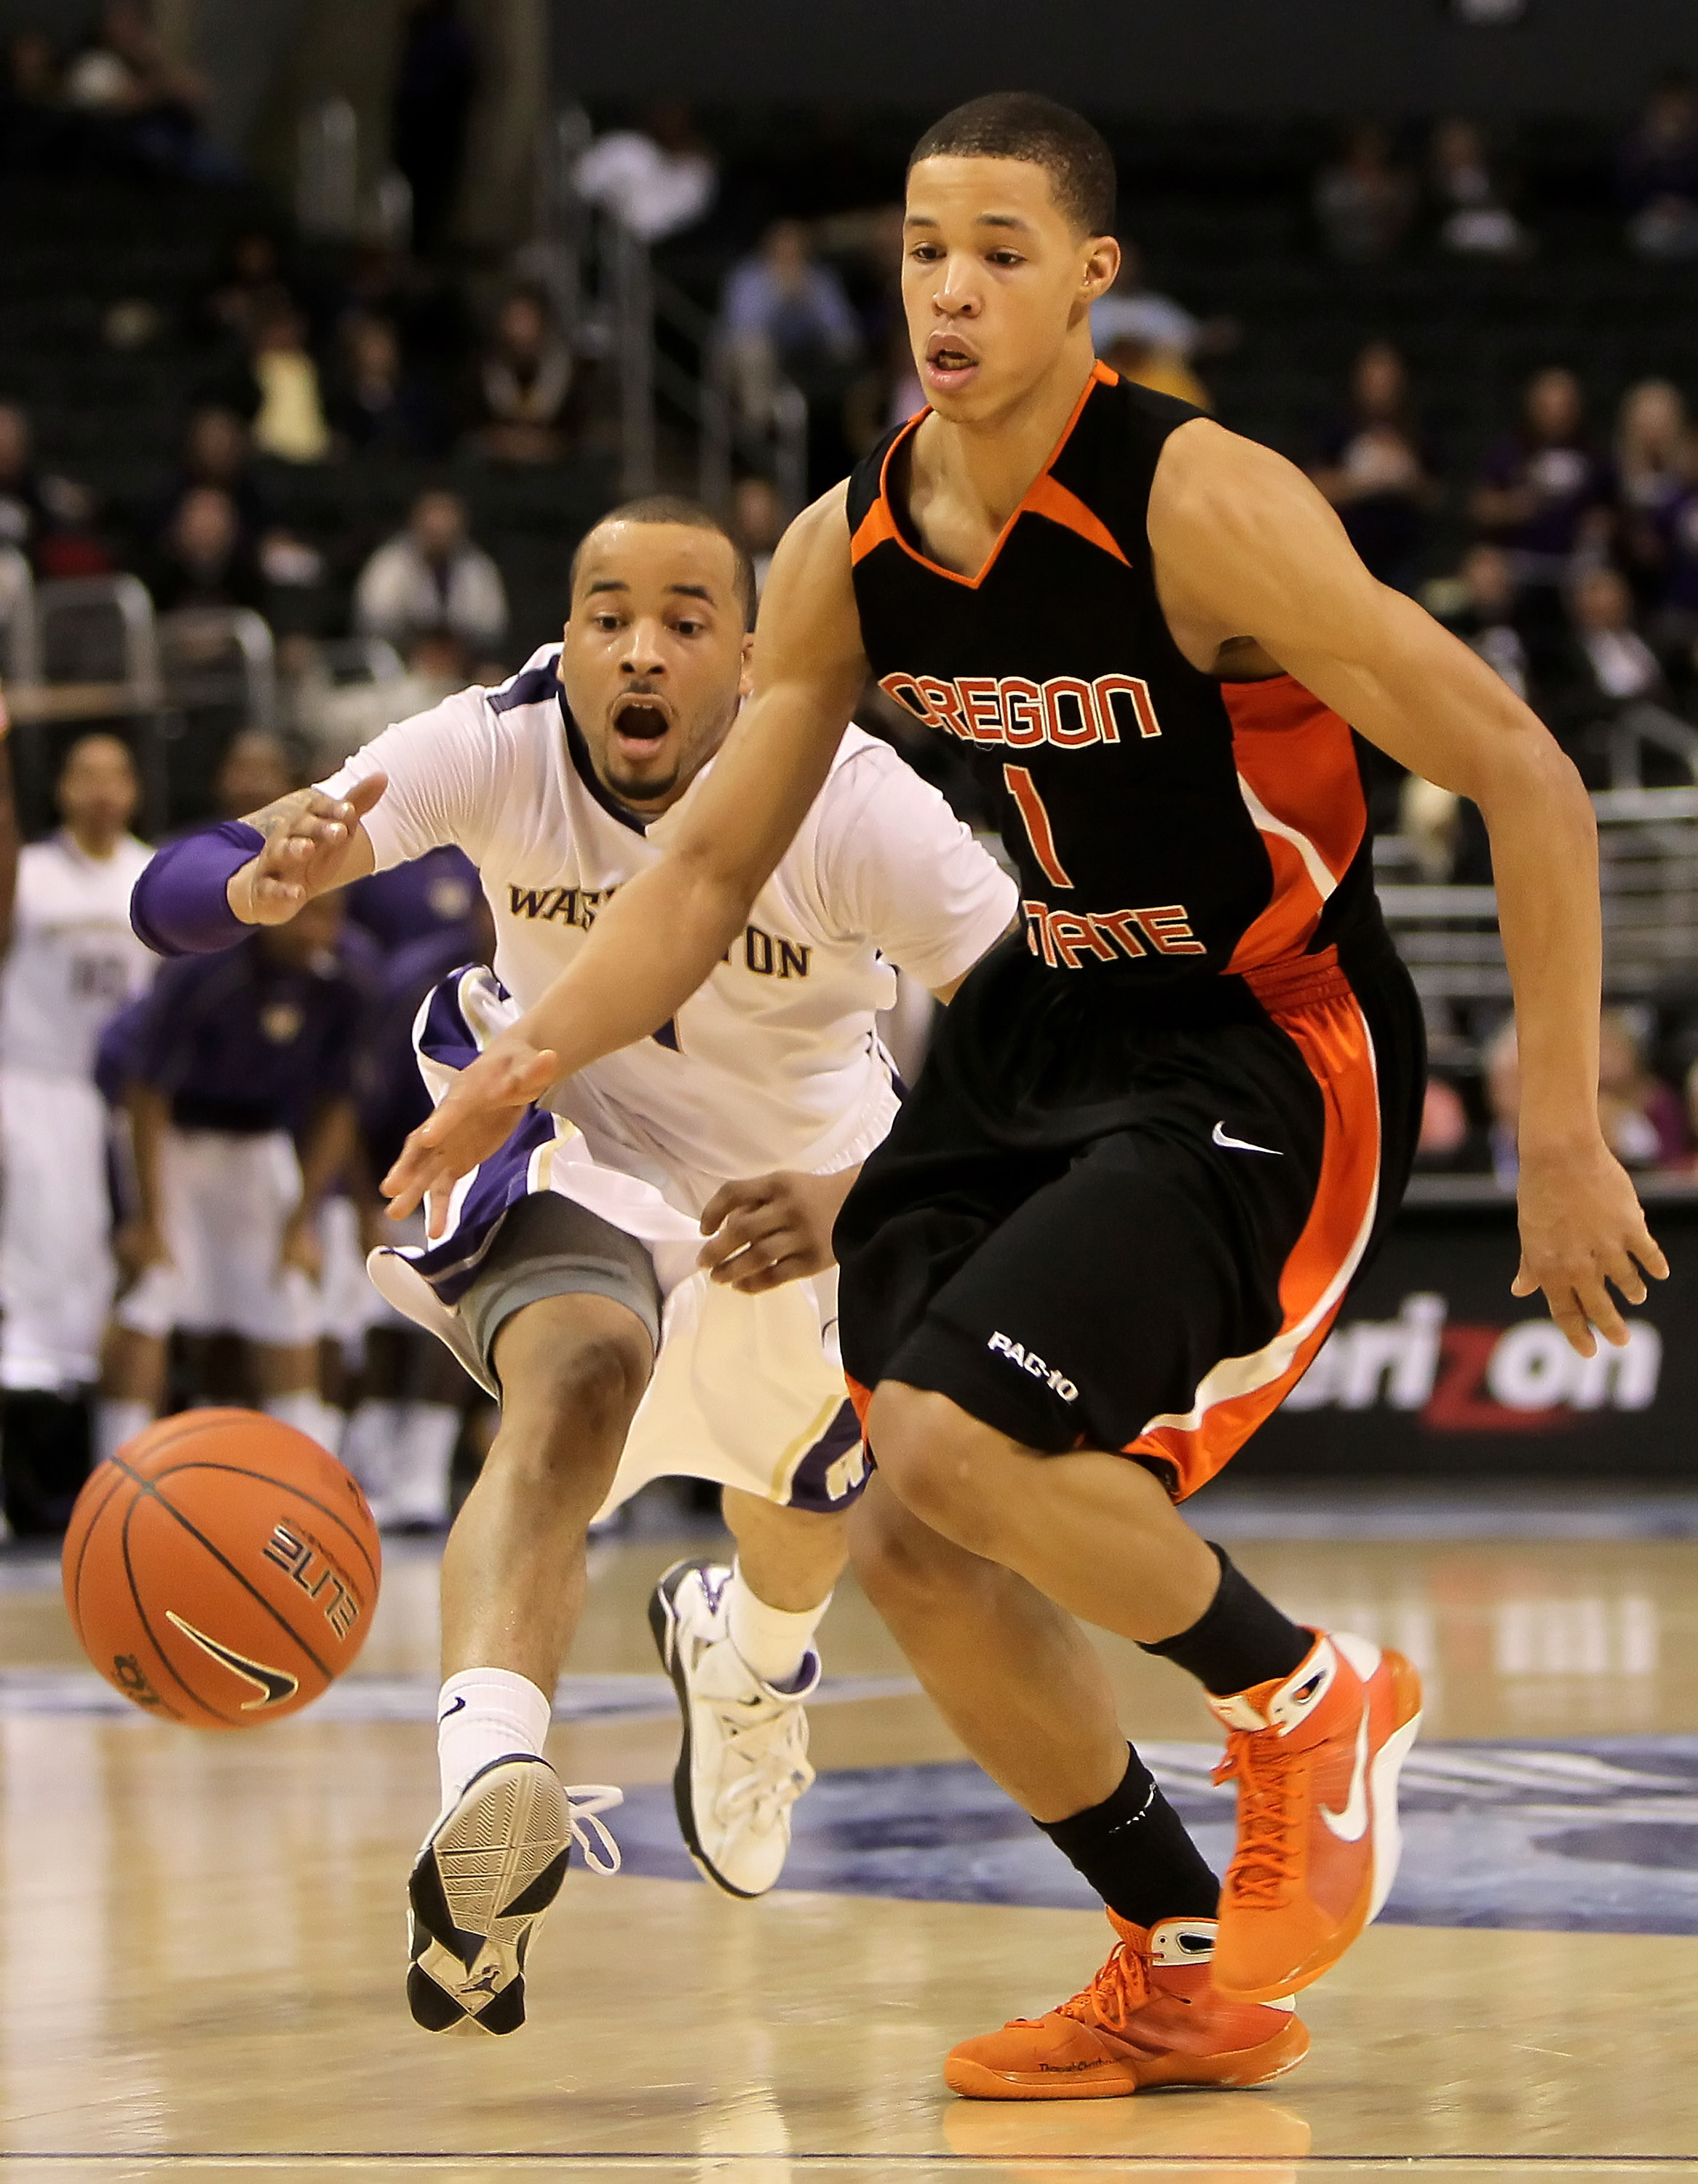 LOS ANGELES, CA - MARCH 11:  Venoy Overton #1 of the Washington Huskies pursues Jared Cunningham #1 of the Oregon State Beavers for the ball in the second half during the Quarterfinals of the Pac-10 Basketball Tournament at Staples Center on March 11, 201